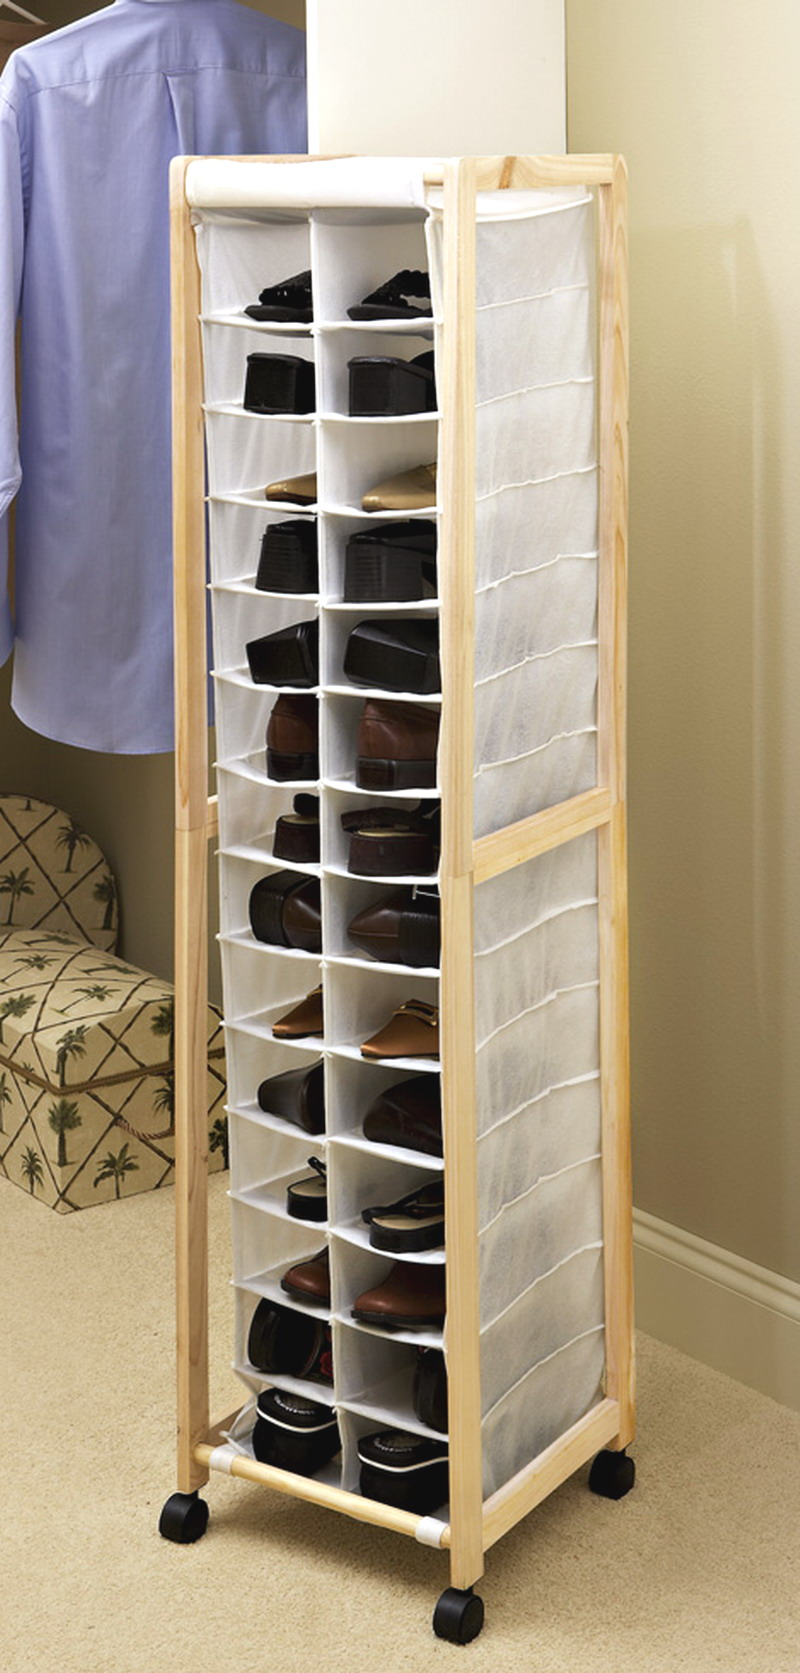 Portable Shoe Storage Tower 14 Pair Closet Organizer Wood Fabric